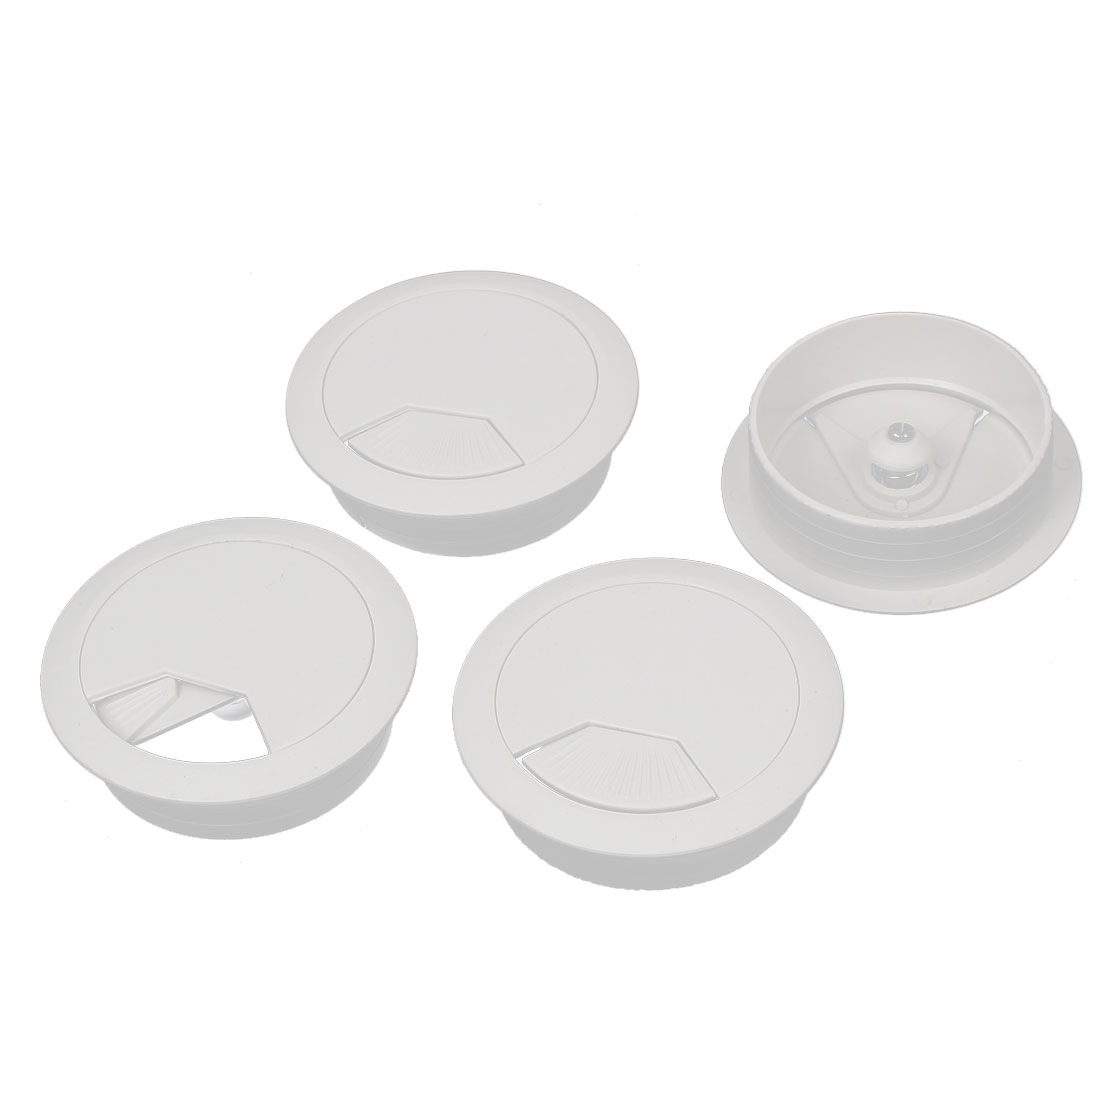 Uxcell 53mm Dia. Plastic Cable Hole Cover Grommet White for Home Office Computer Desk (4-pack) - image 3 of 3